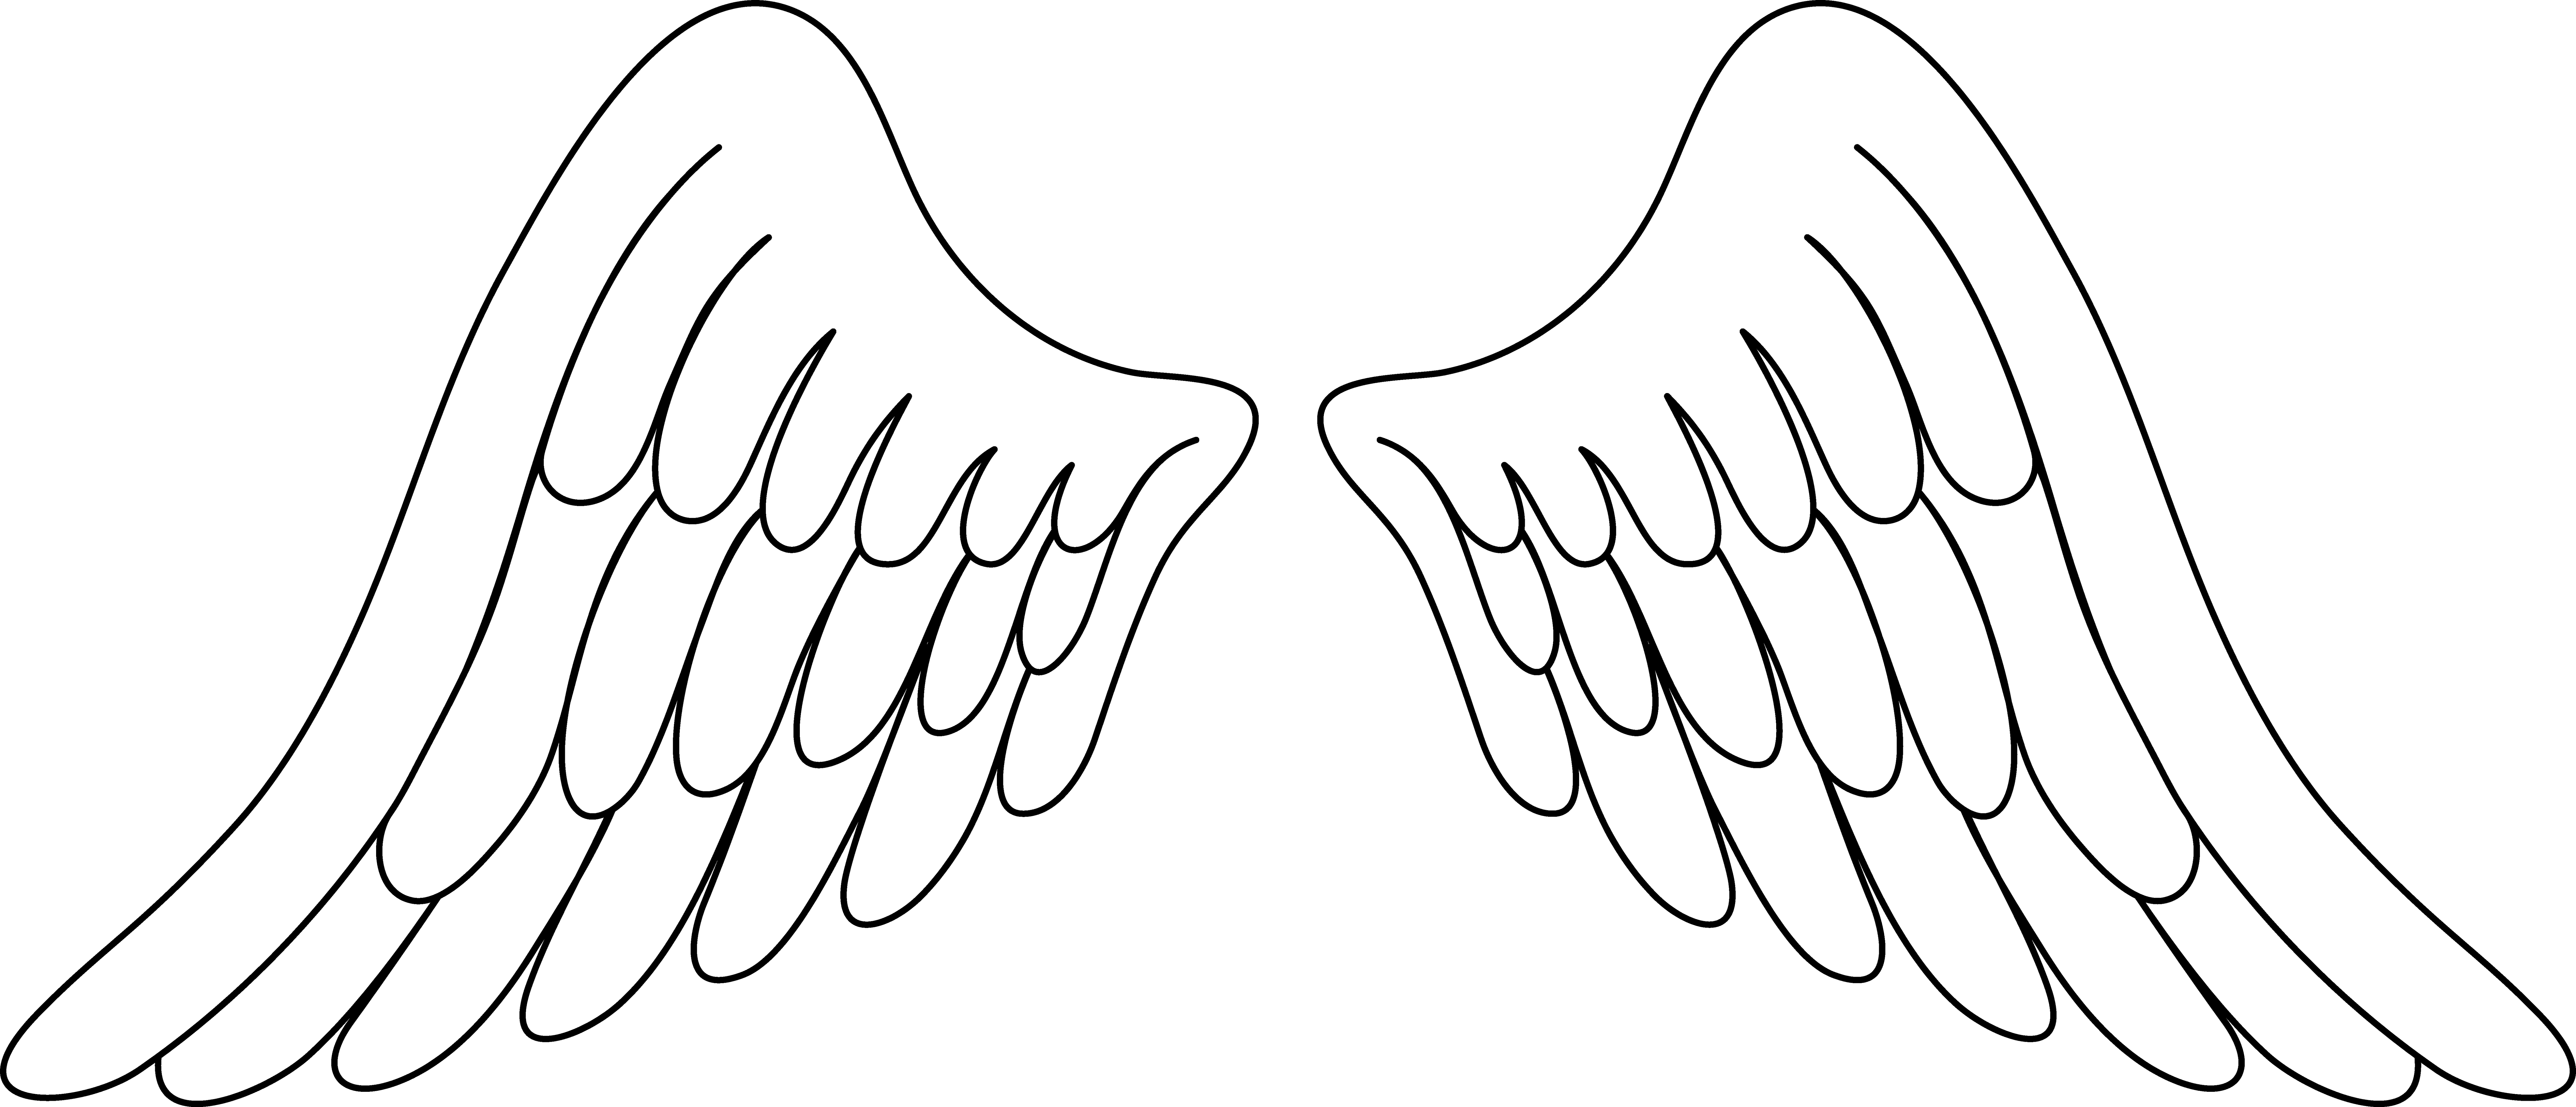 angel wings angel wing clip art image clipartix wings to fly rh pinterest com wings clip art public wings clip art black and whtie